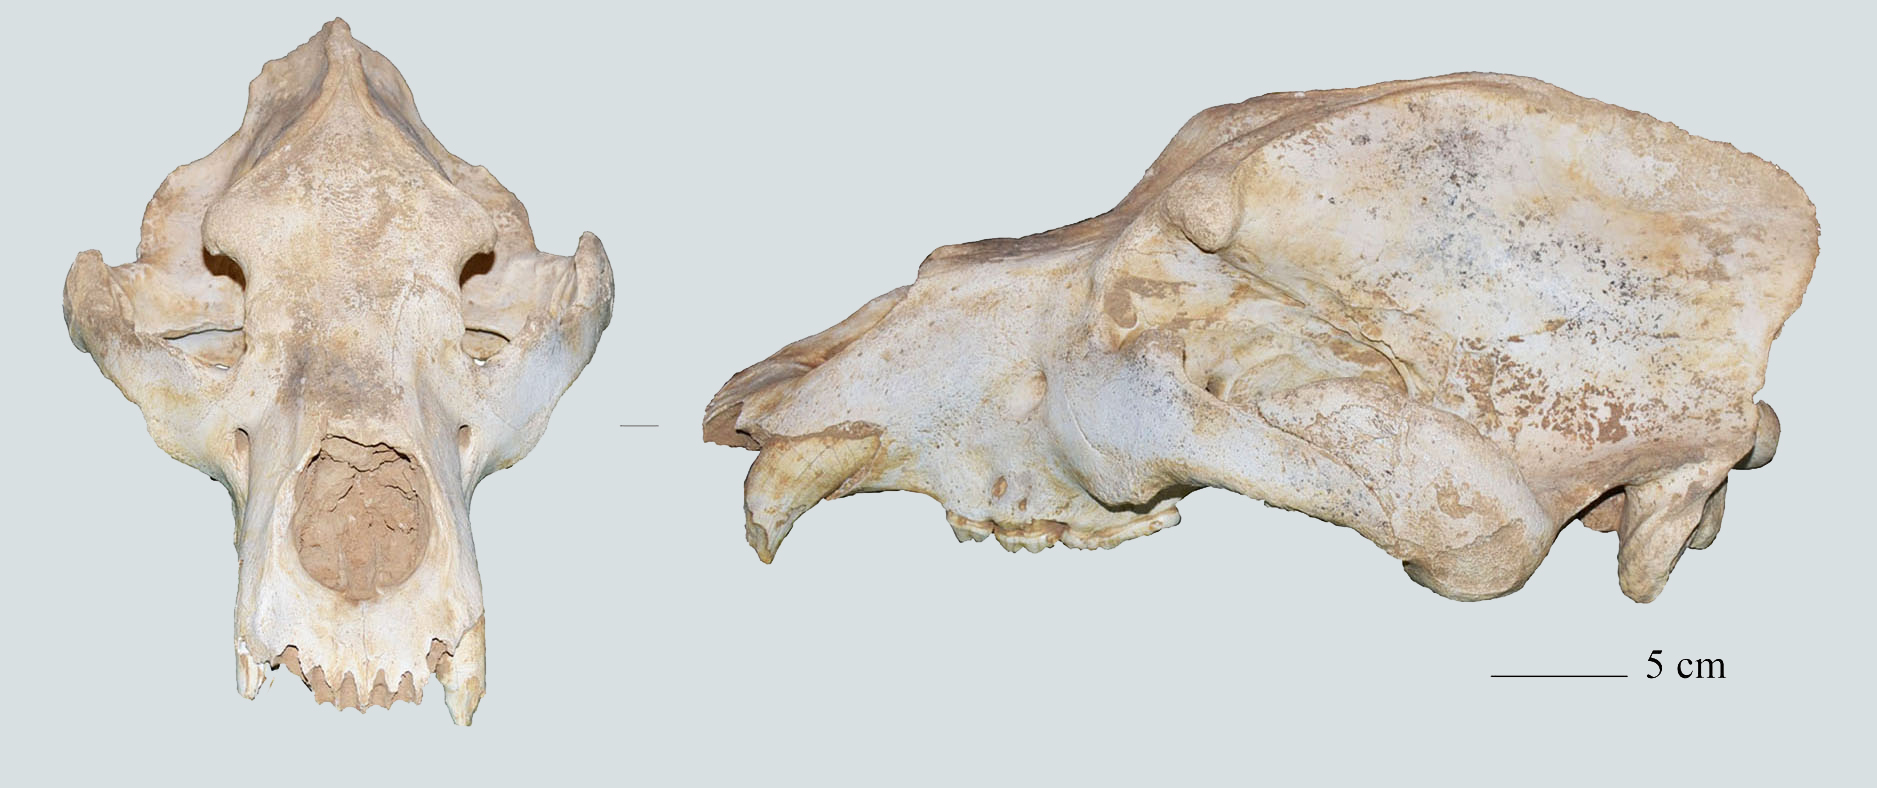 This cave bear skull from the late Pleistocene was found in a cave near Vincenza in Italy.